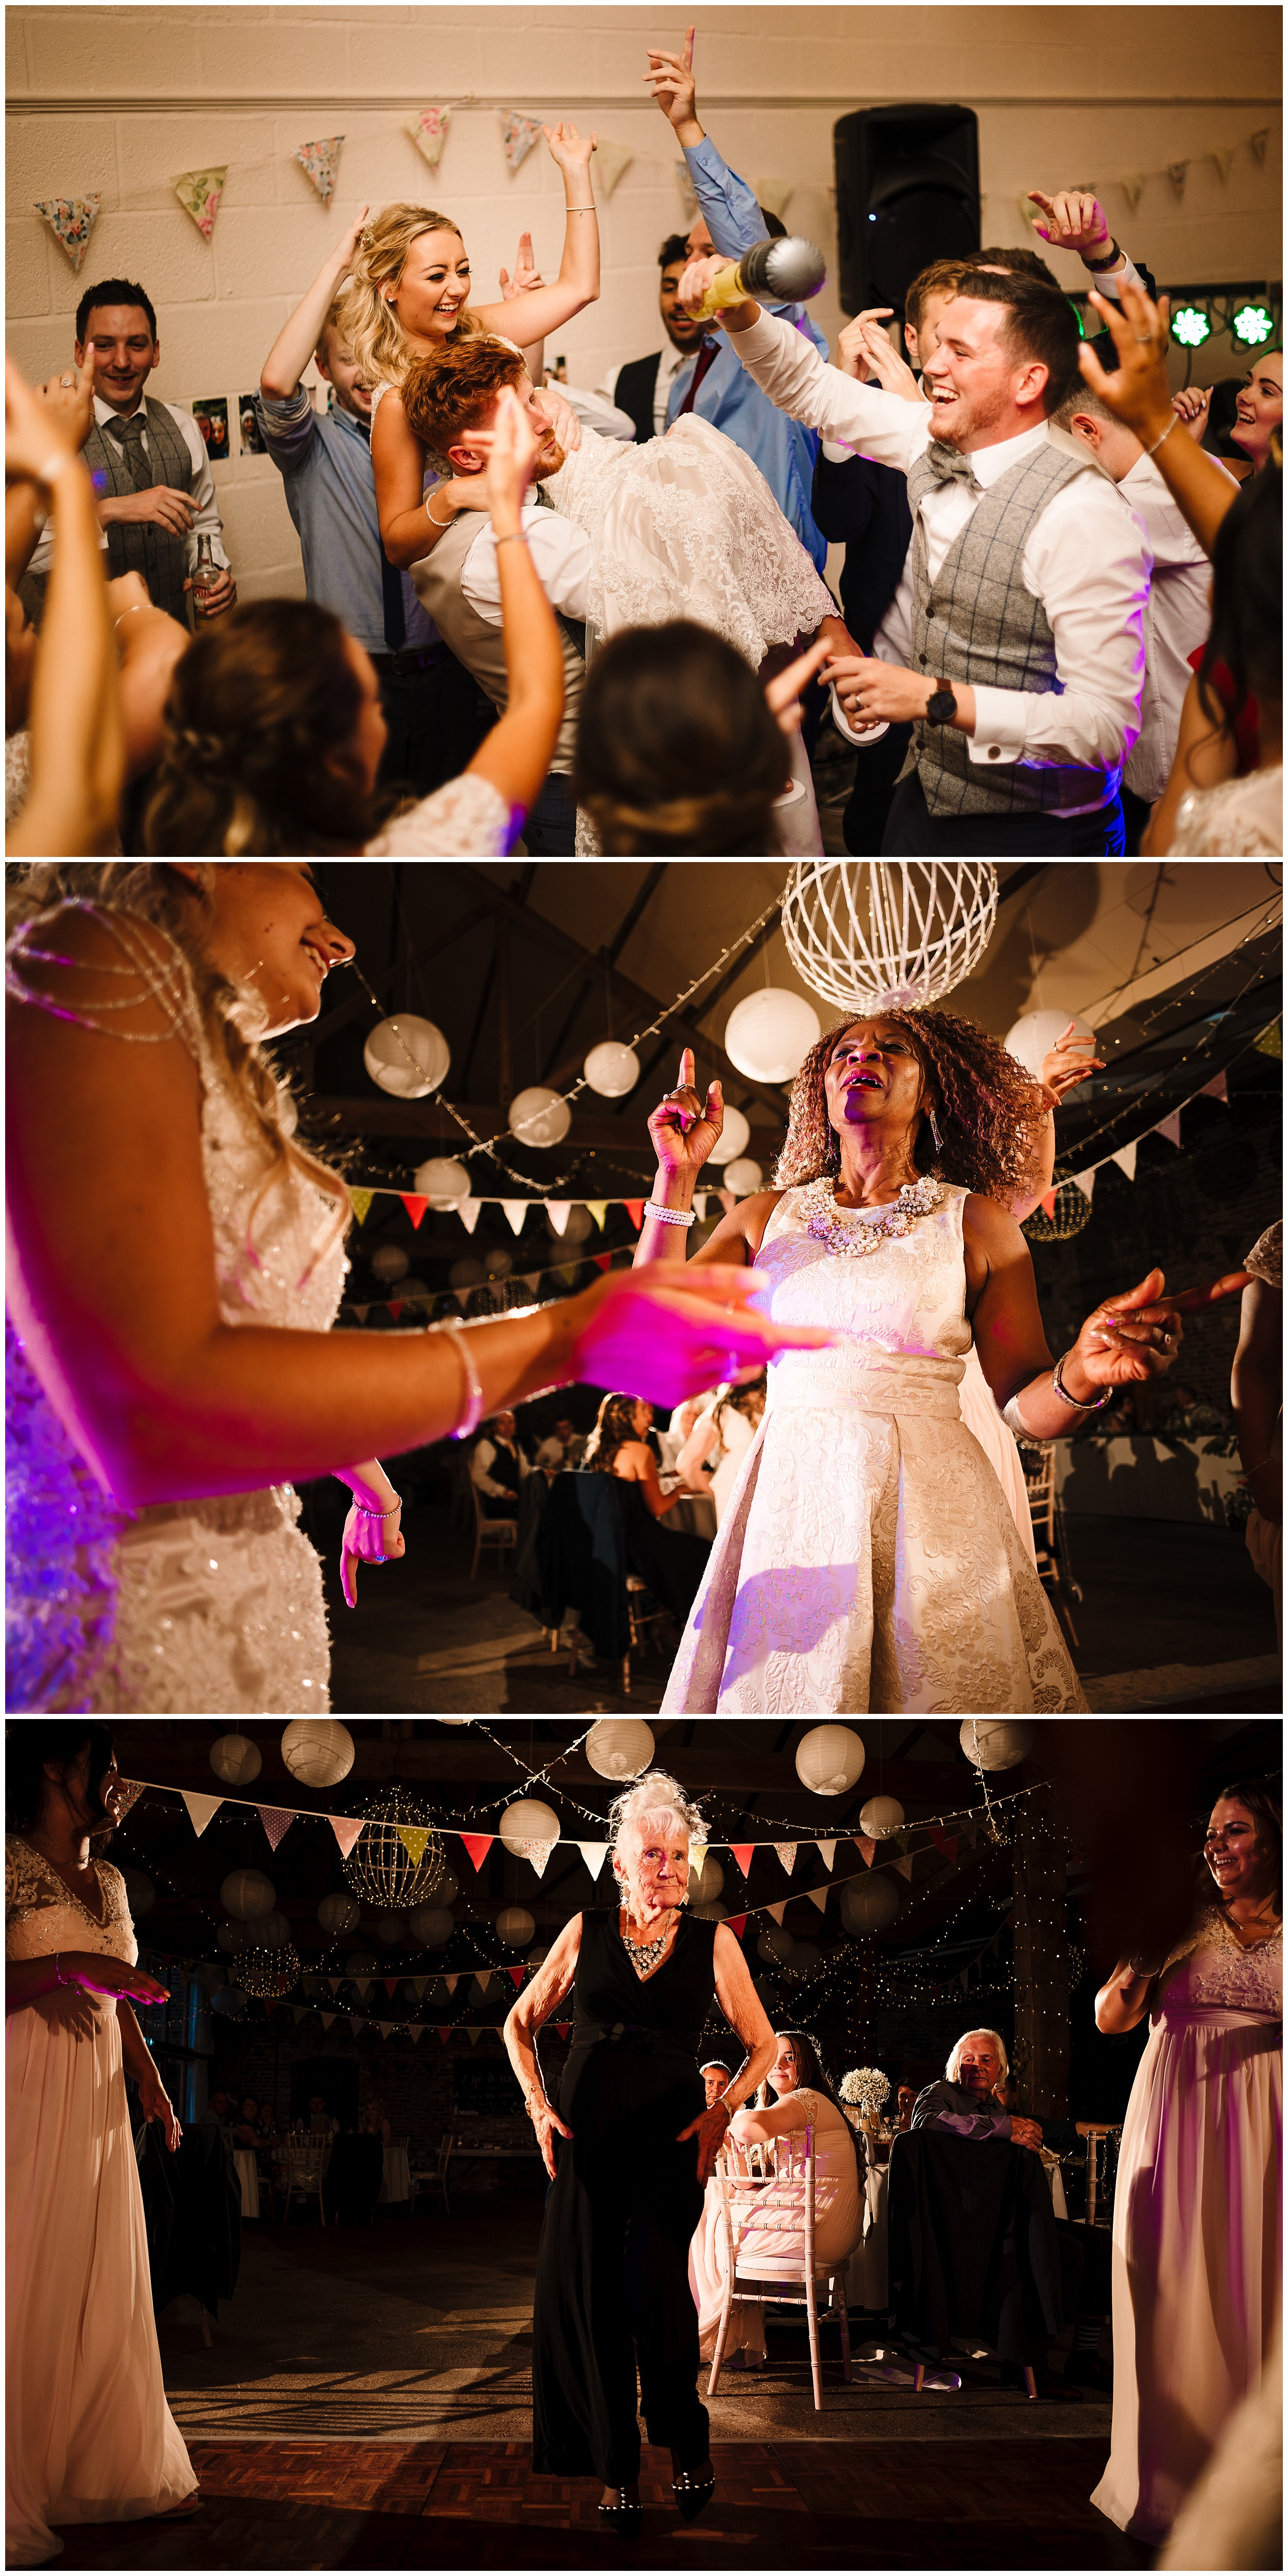 GUESTS ON THE DANCE FLOOR AT A WEDDING IN YORKSHIRE